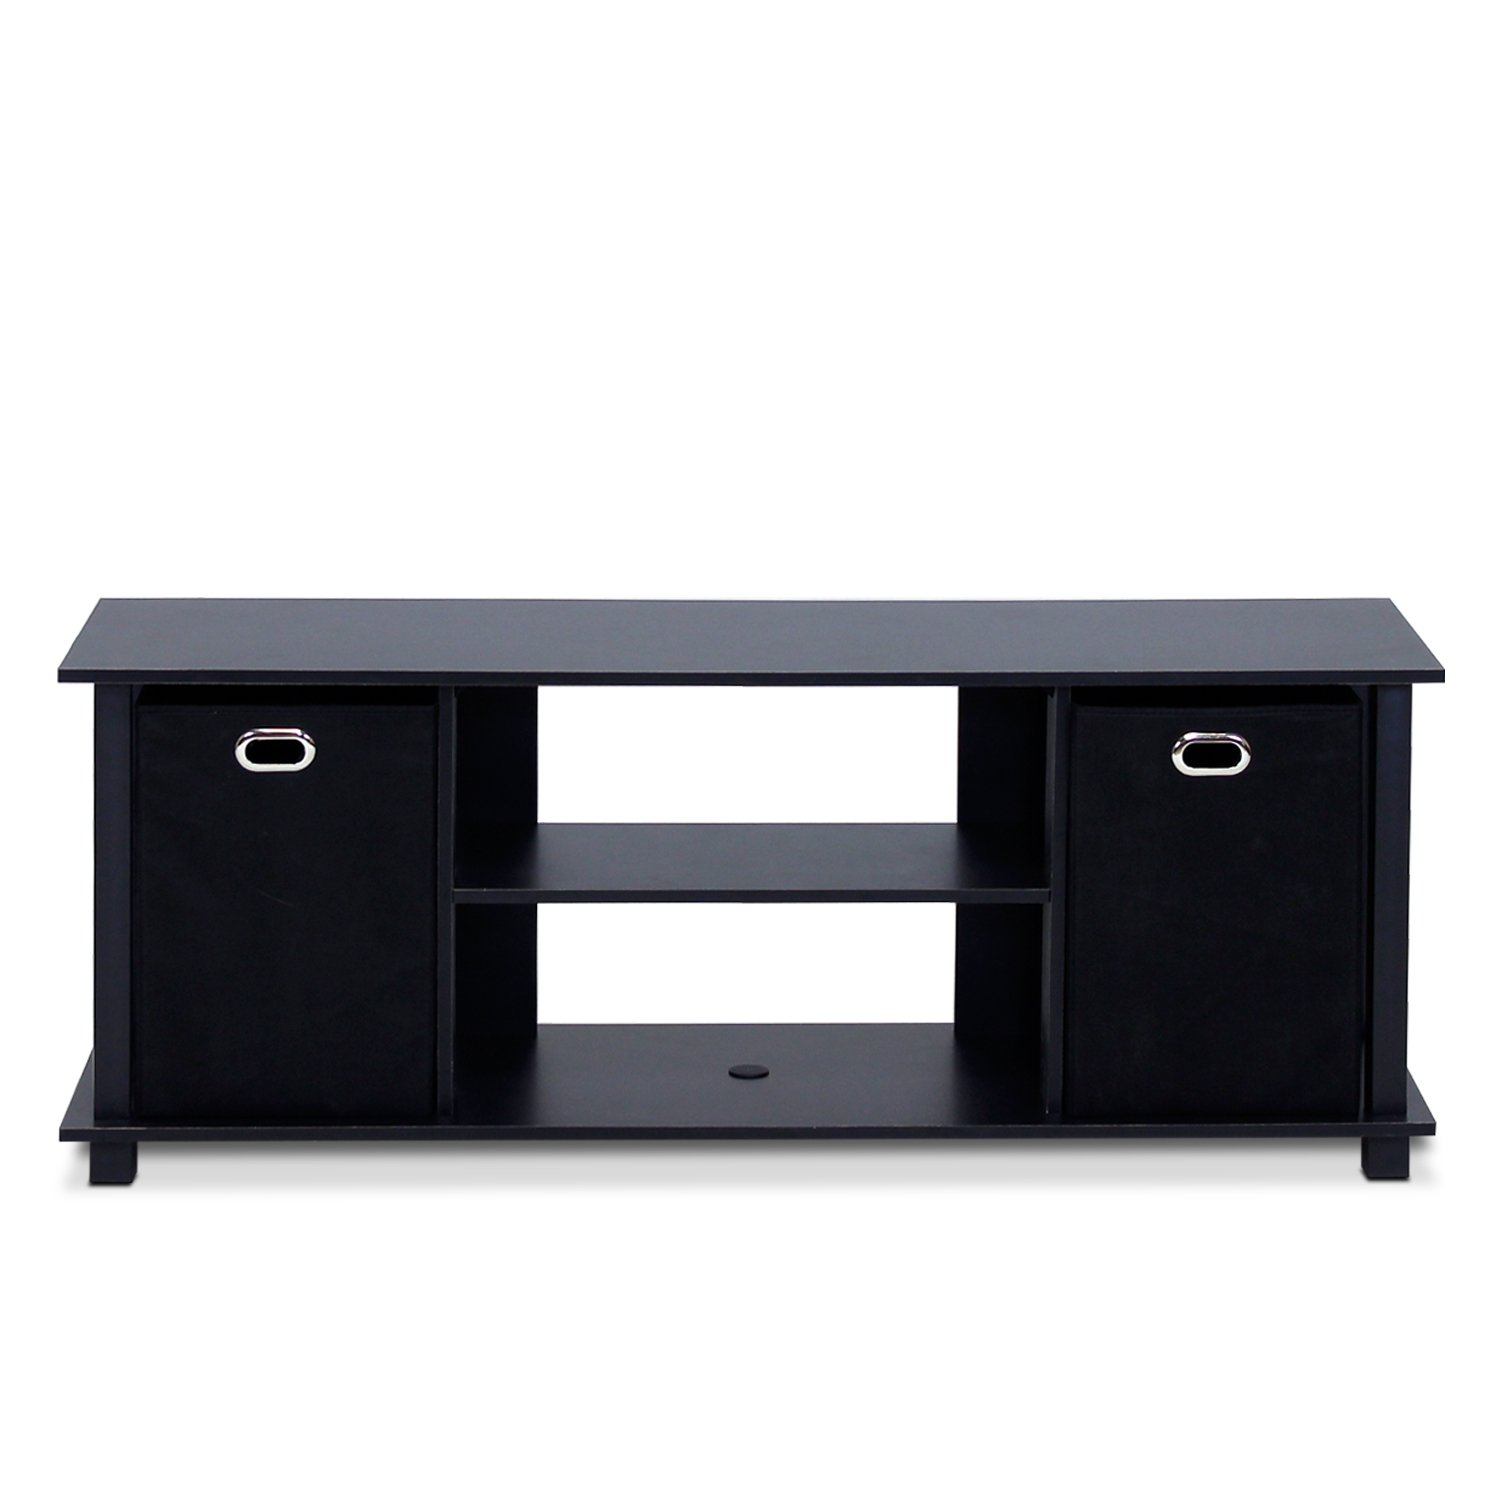 Furinno 13054BK/BK Econ Entertainment Center, Black by Furinno